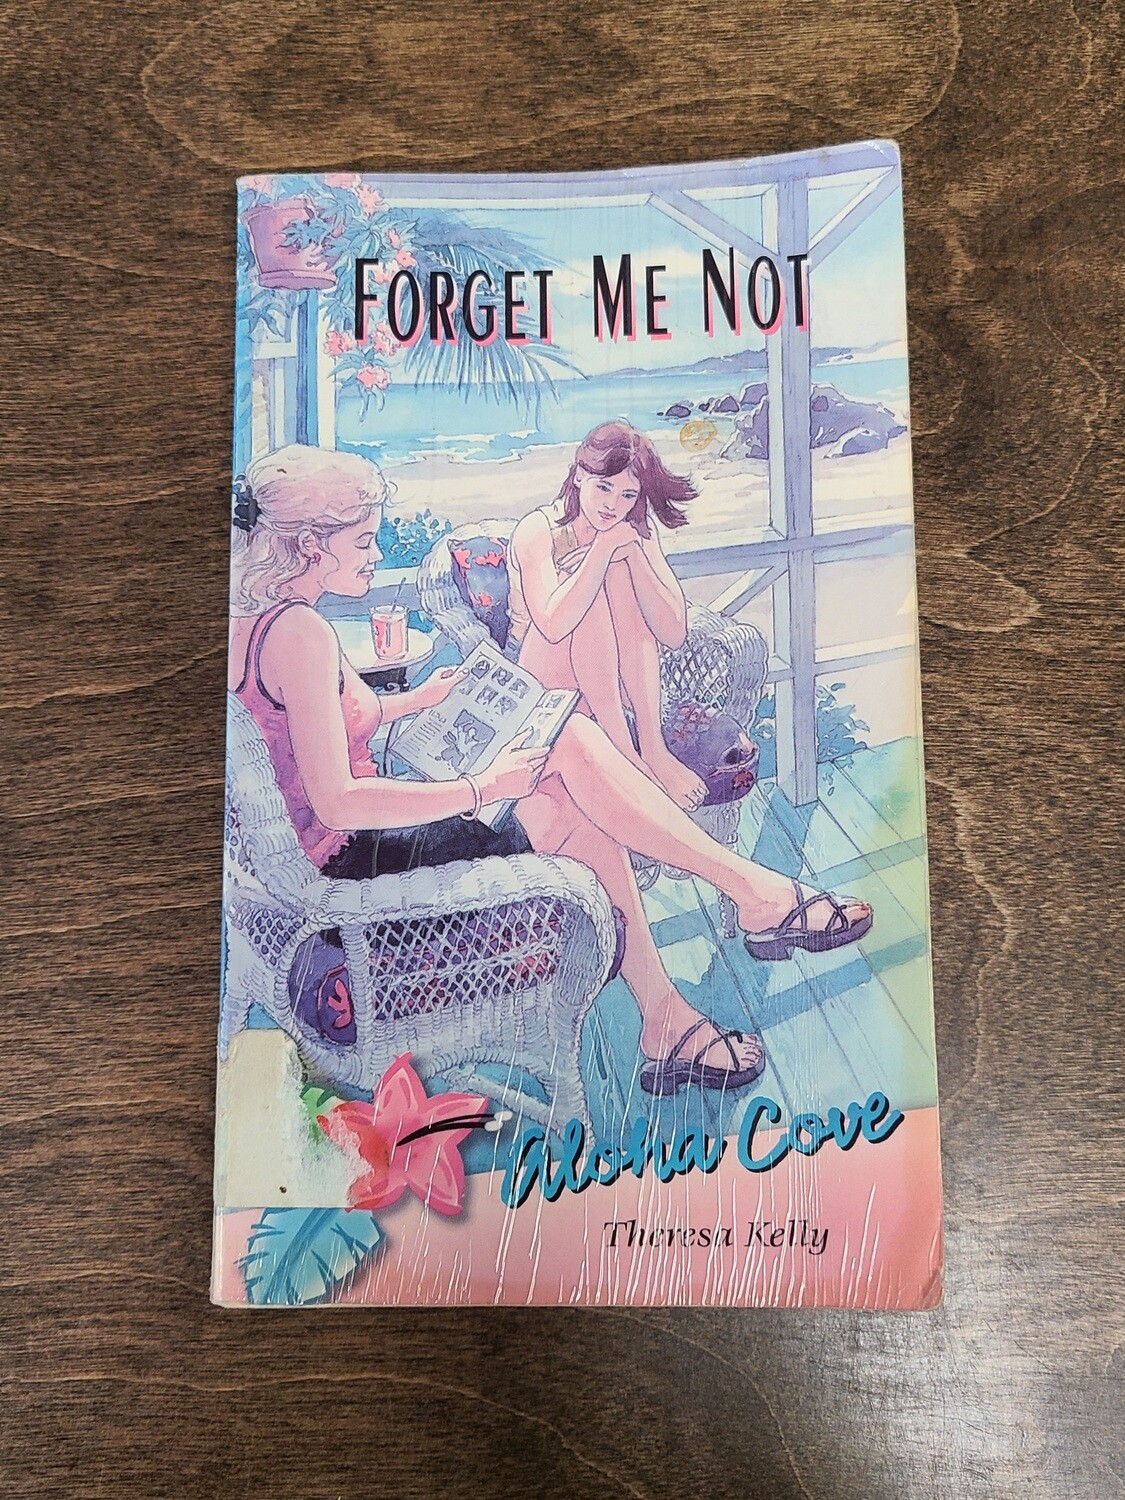 Forget Me Not by Theresa Kelly